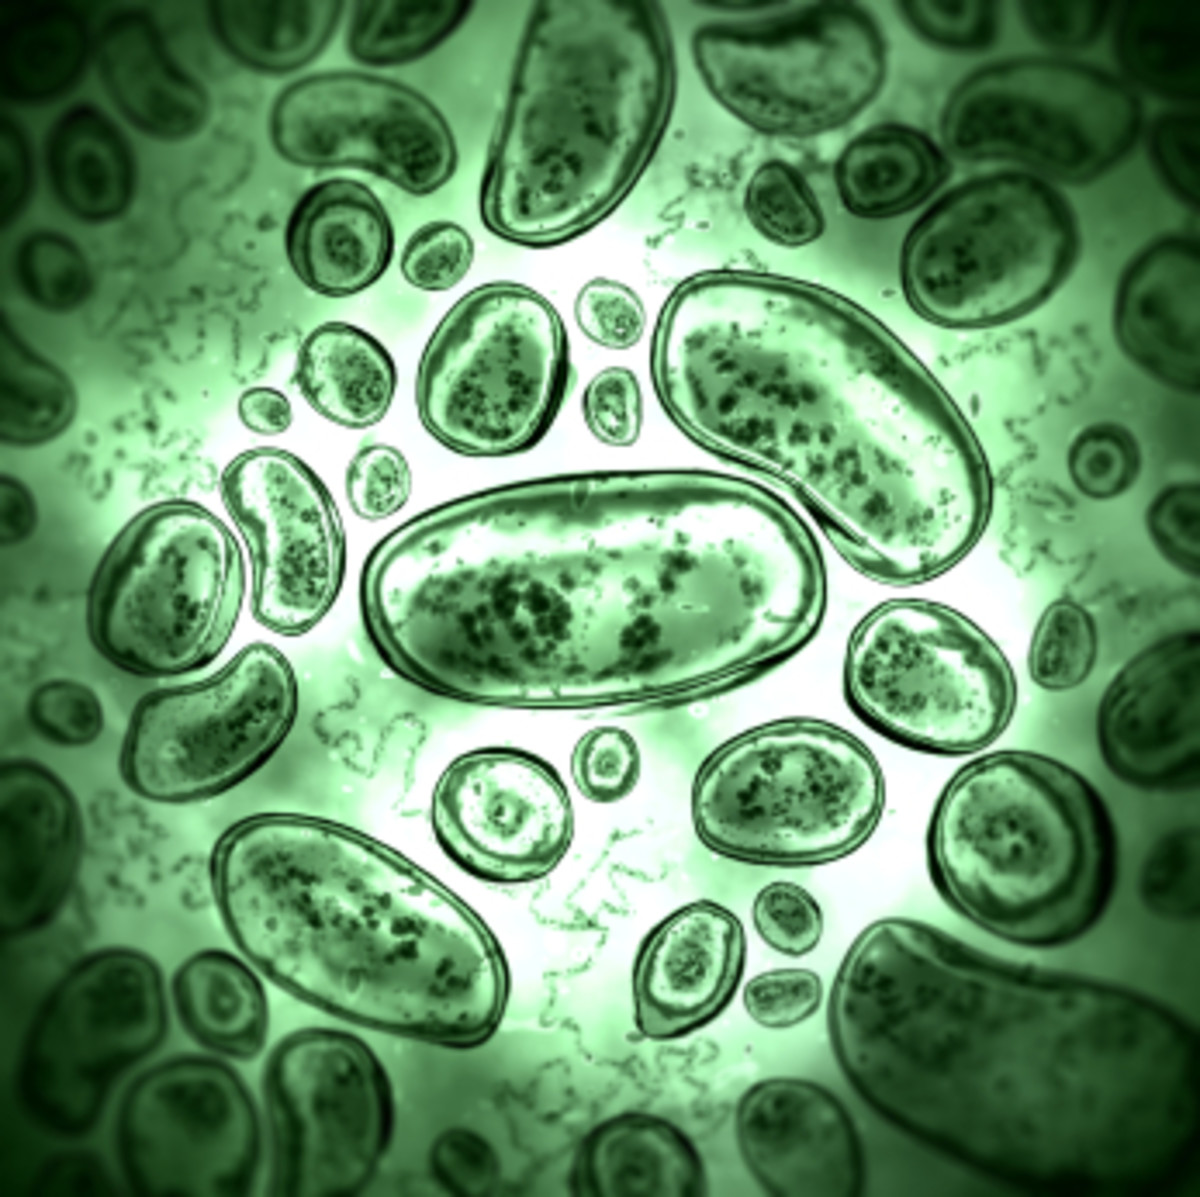 Less than 1 in 10 of your cells are human